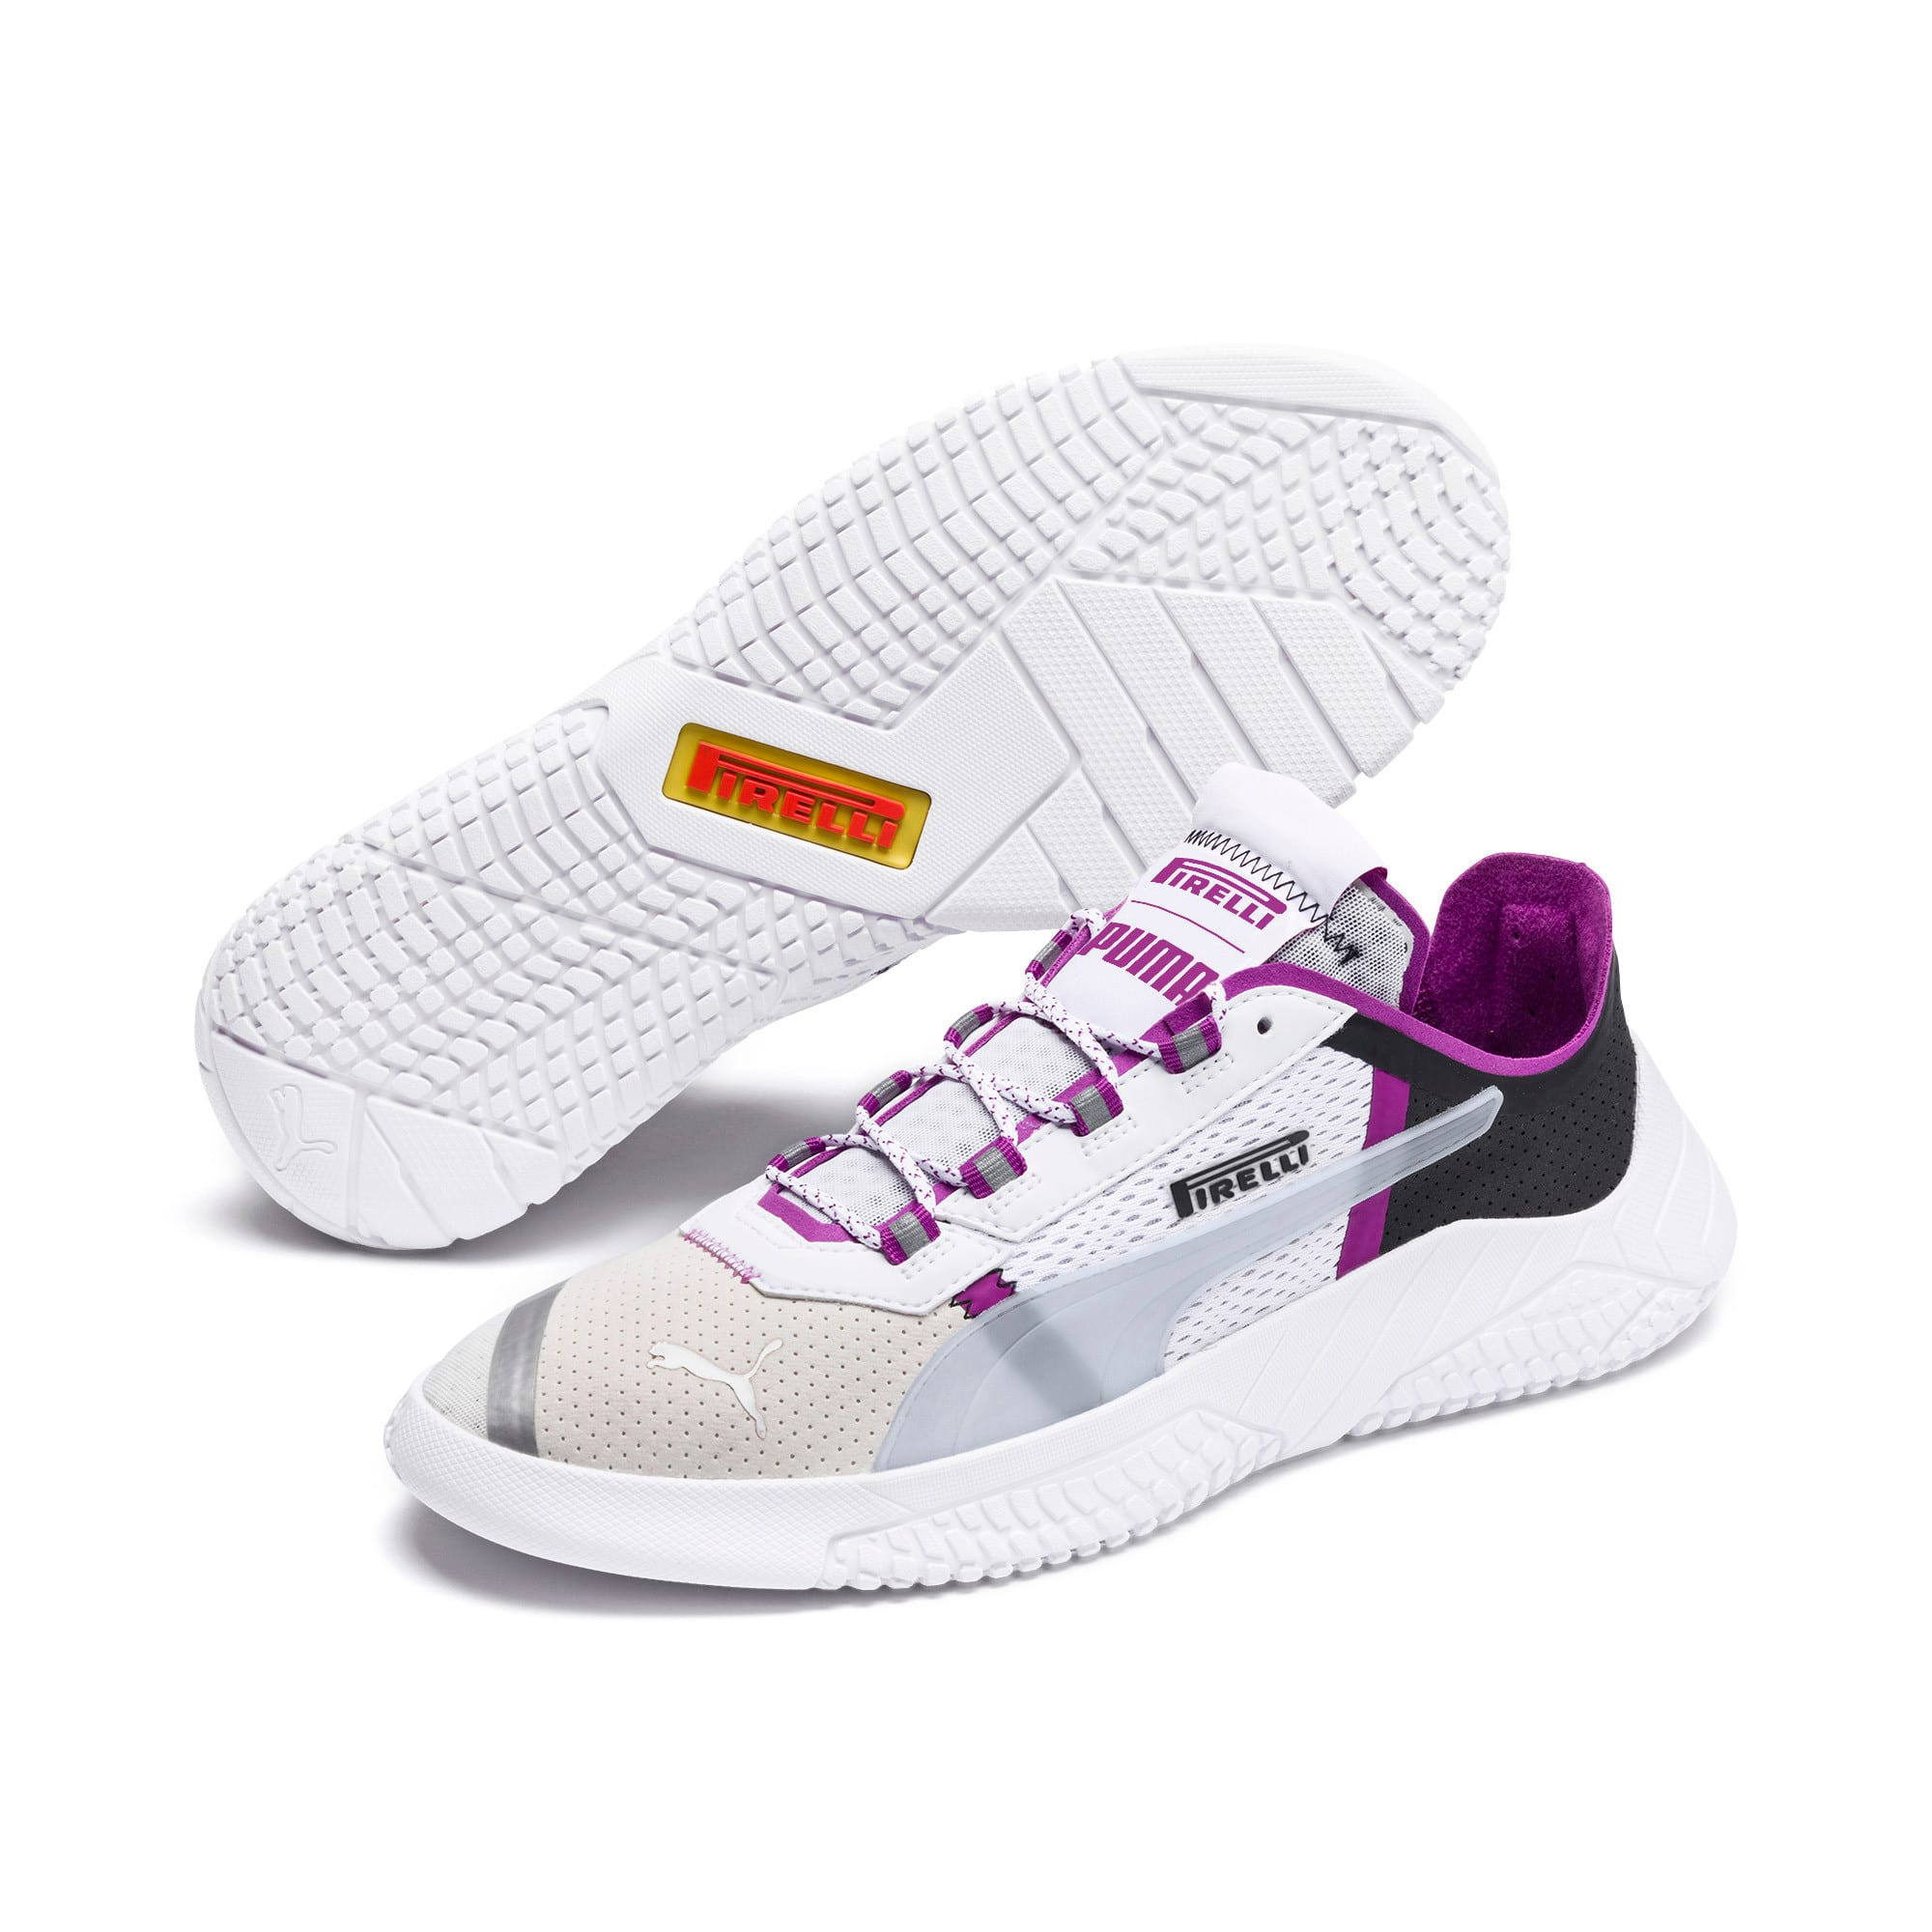 Thumbnail 3 of Pirelli Replicat-X Trainers, White-Hyacinth Viol-Red, medium